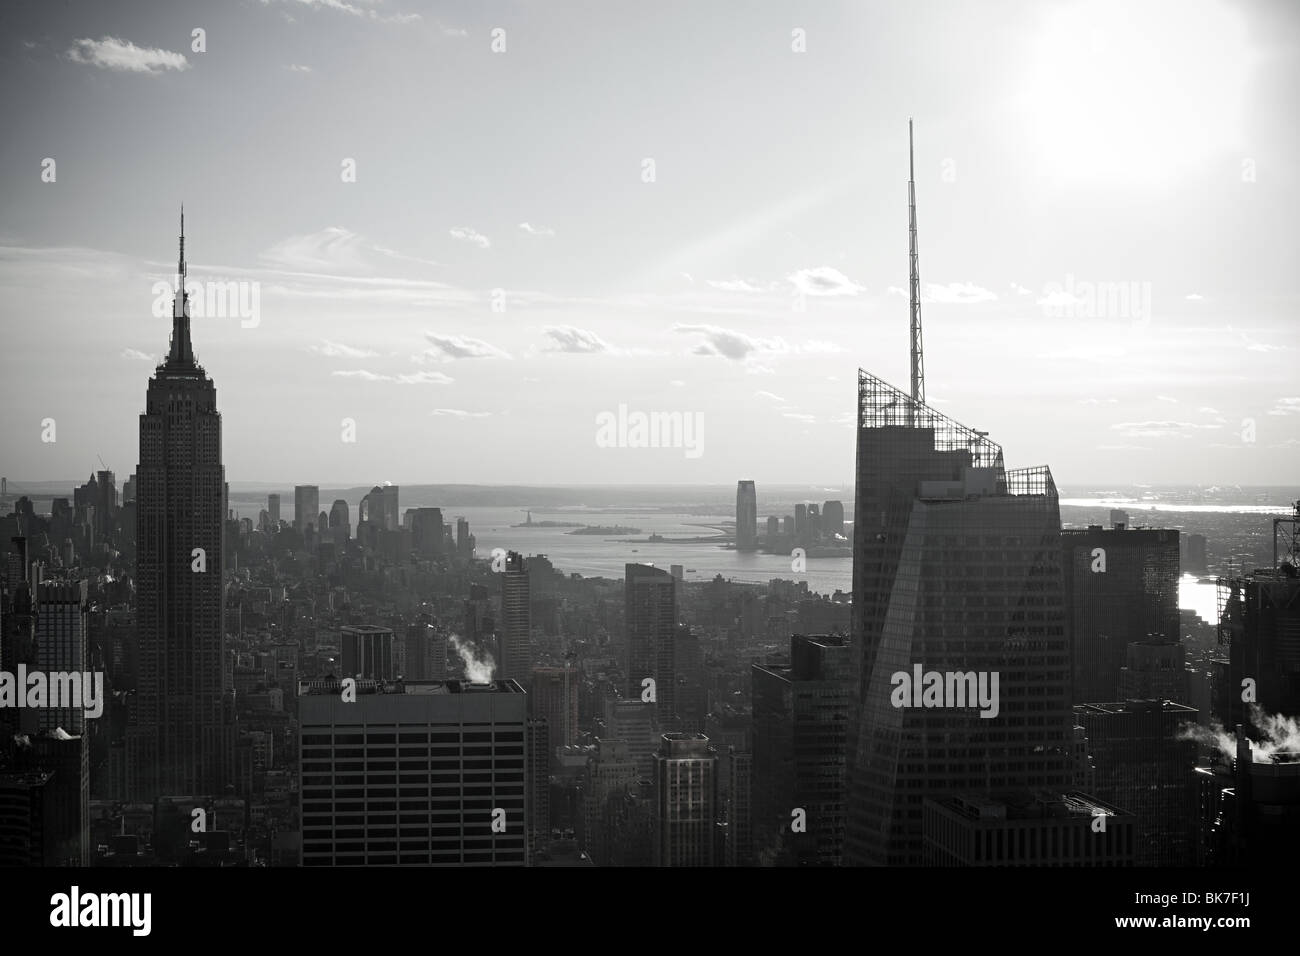 Empire state building and hudson river - Stock Image